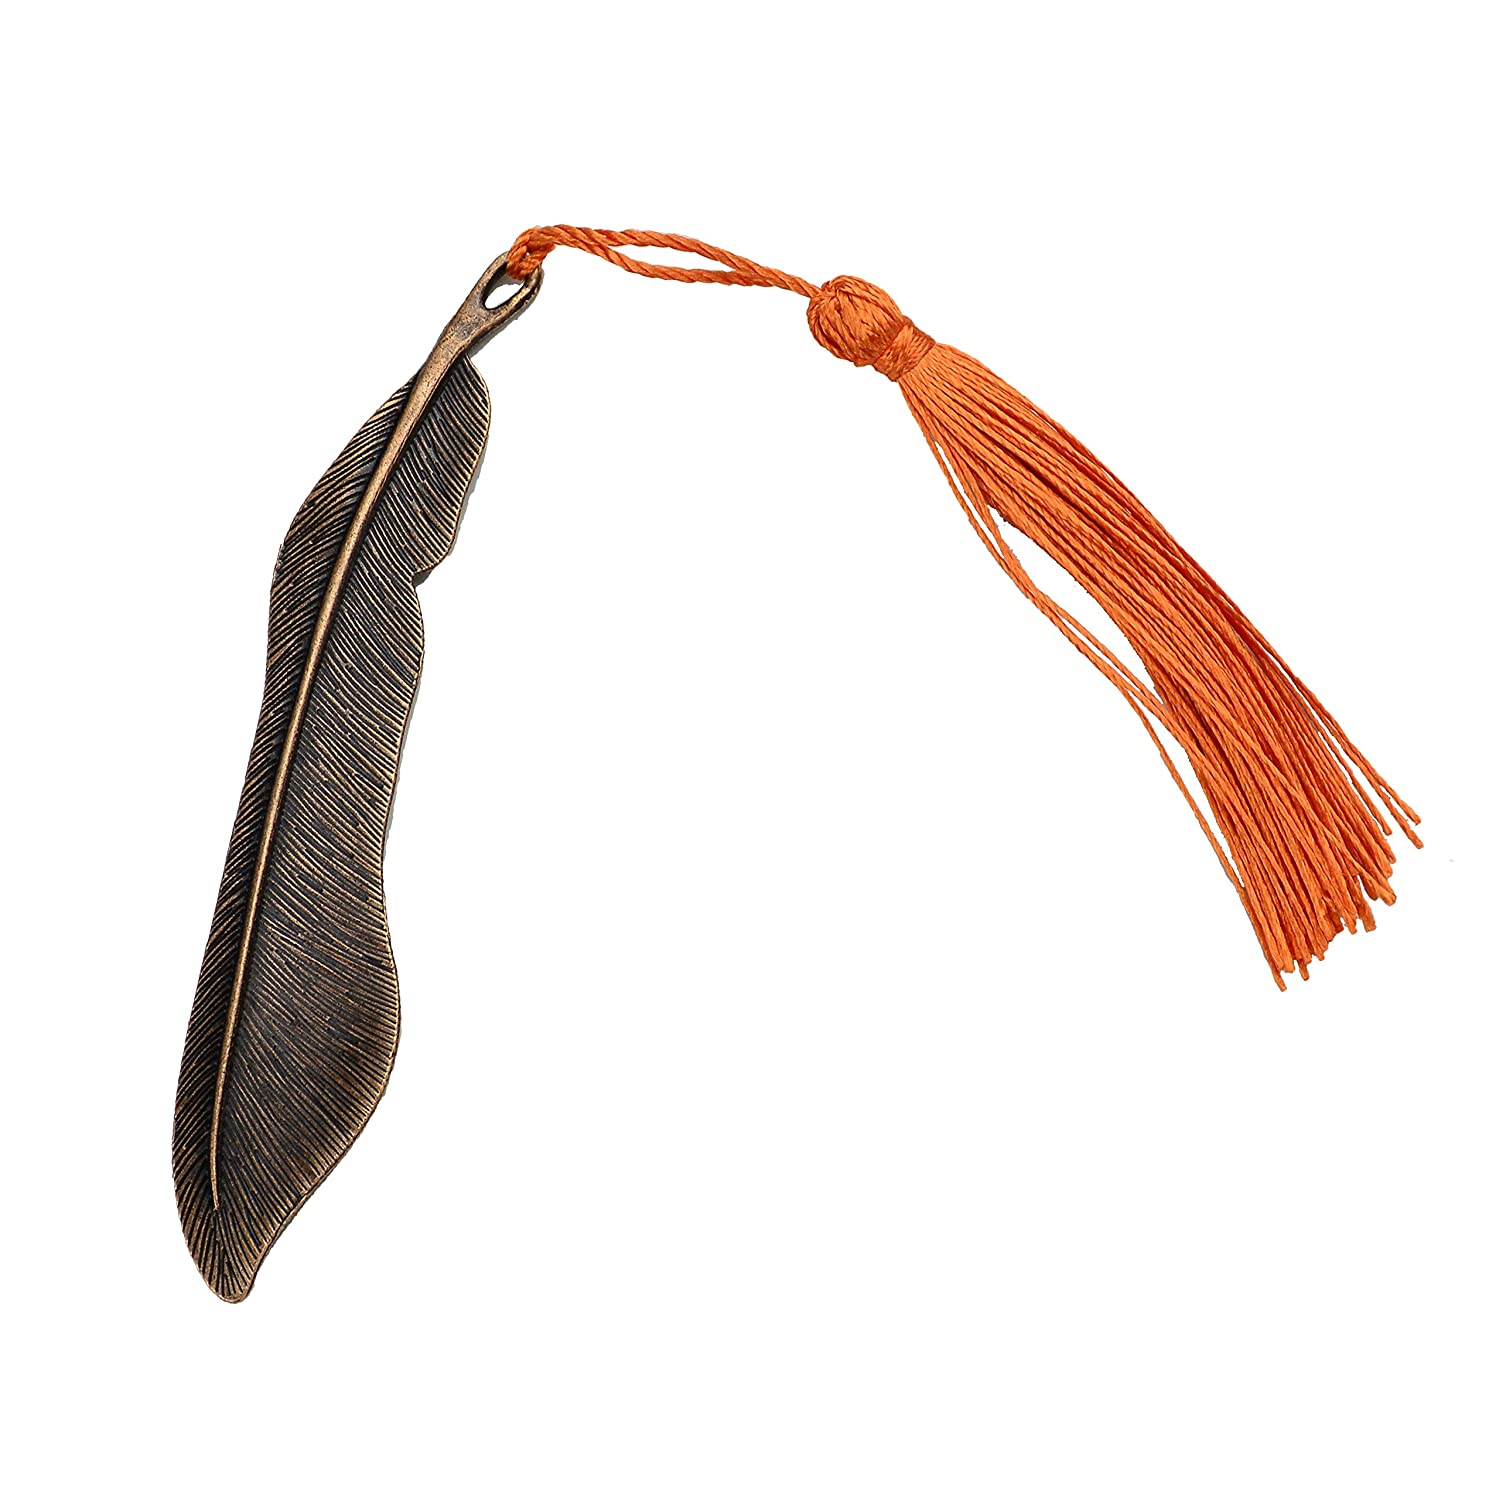 100pcs 13cm//5 inches Silky Floss Bookmark Tassels with 2-Inch Cord Loop and Small Chinese Knot for Jewelry Making DIY Craft Accessory Bookmarks Souvenir Dark Orange